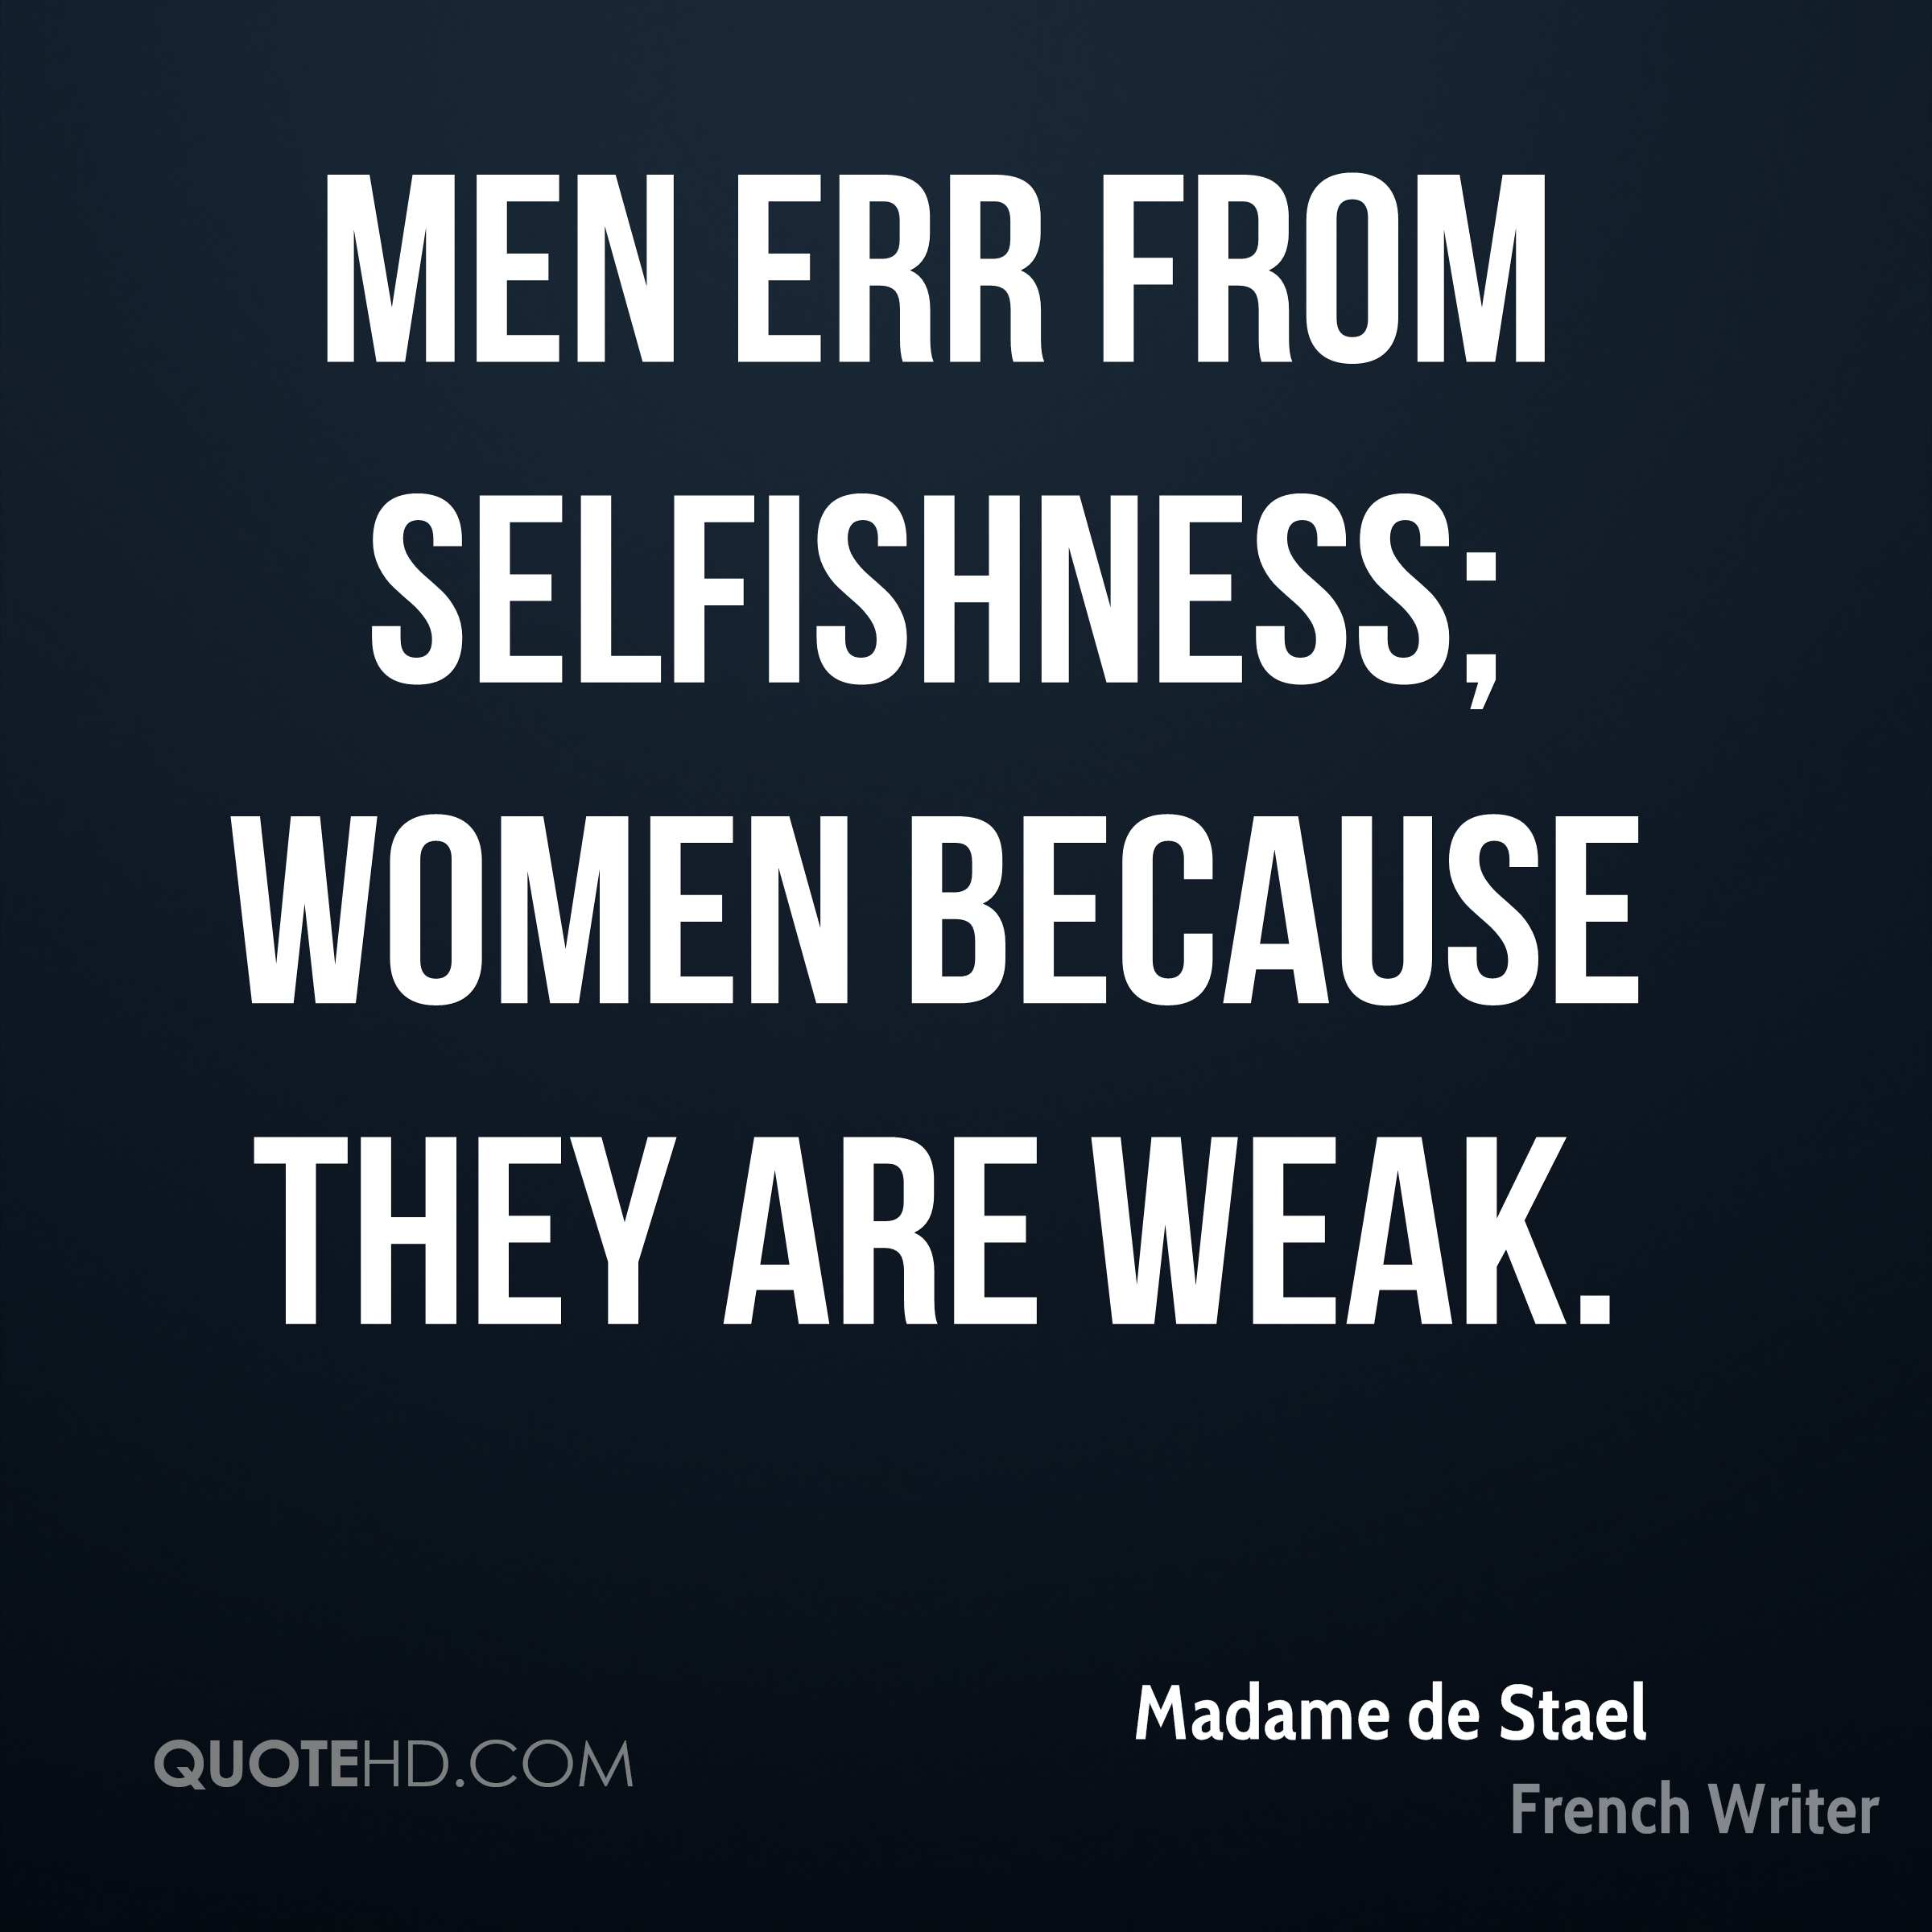 Men err from selfishness; women because they are weak.